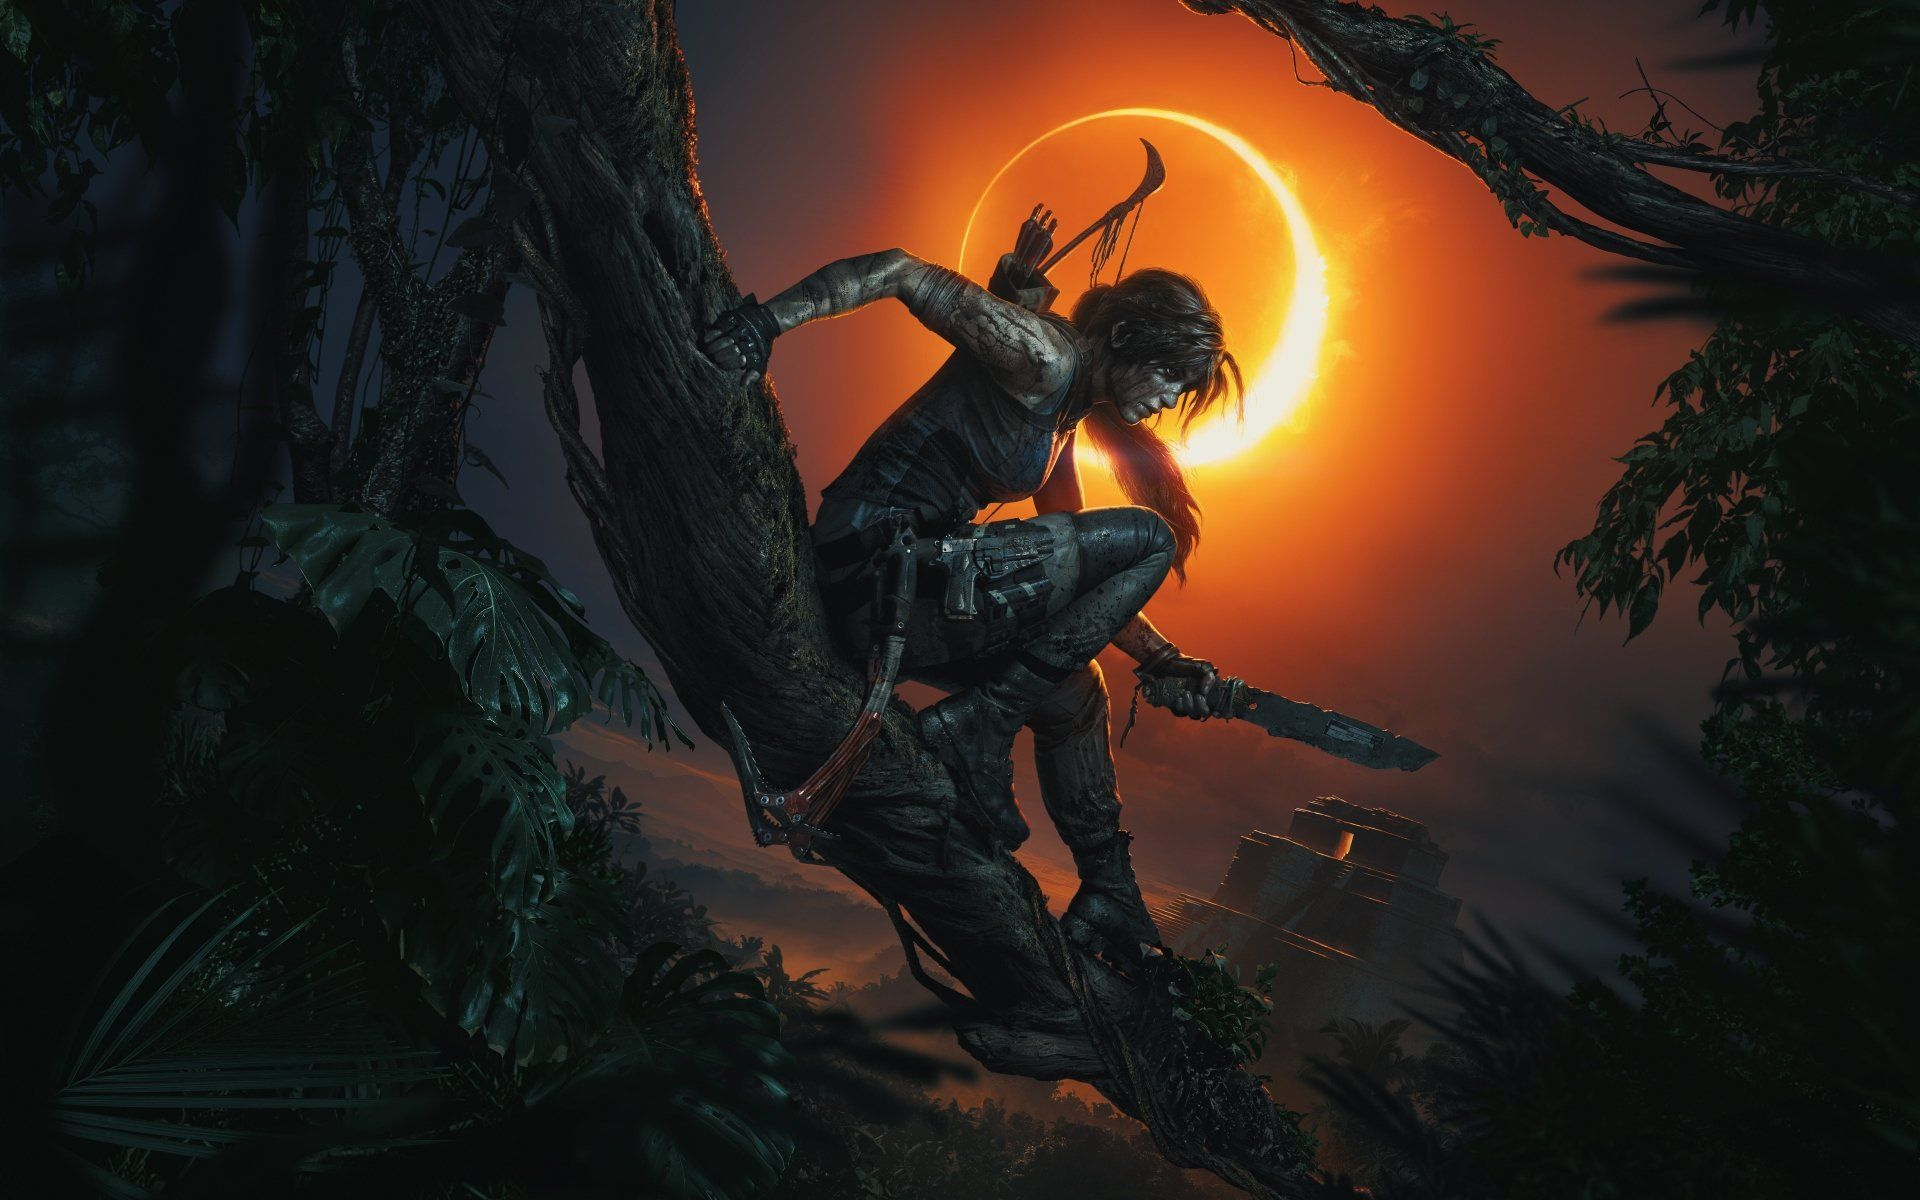 Shadow Of The Tomb Raider Wallpapers - Top Free Shadow Of The Tomb Raider  Backgrounds - WallpaperAccess